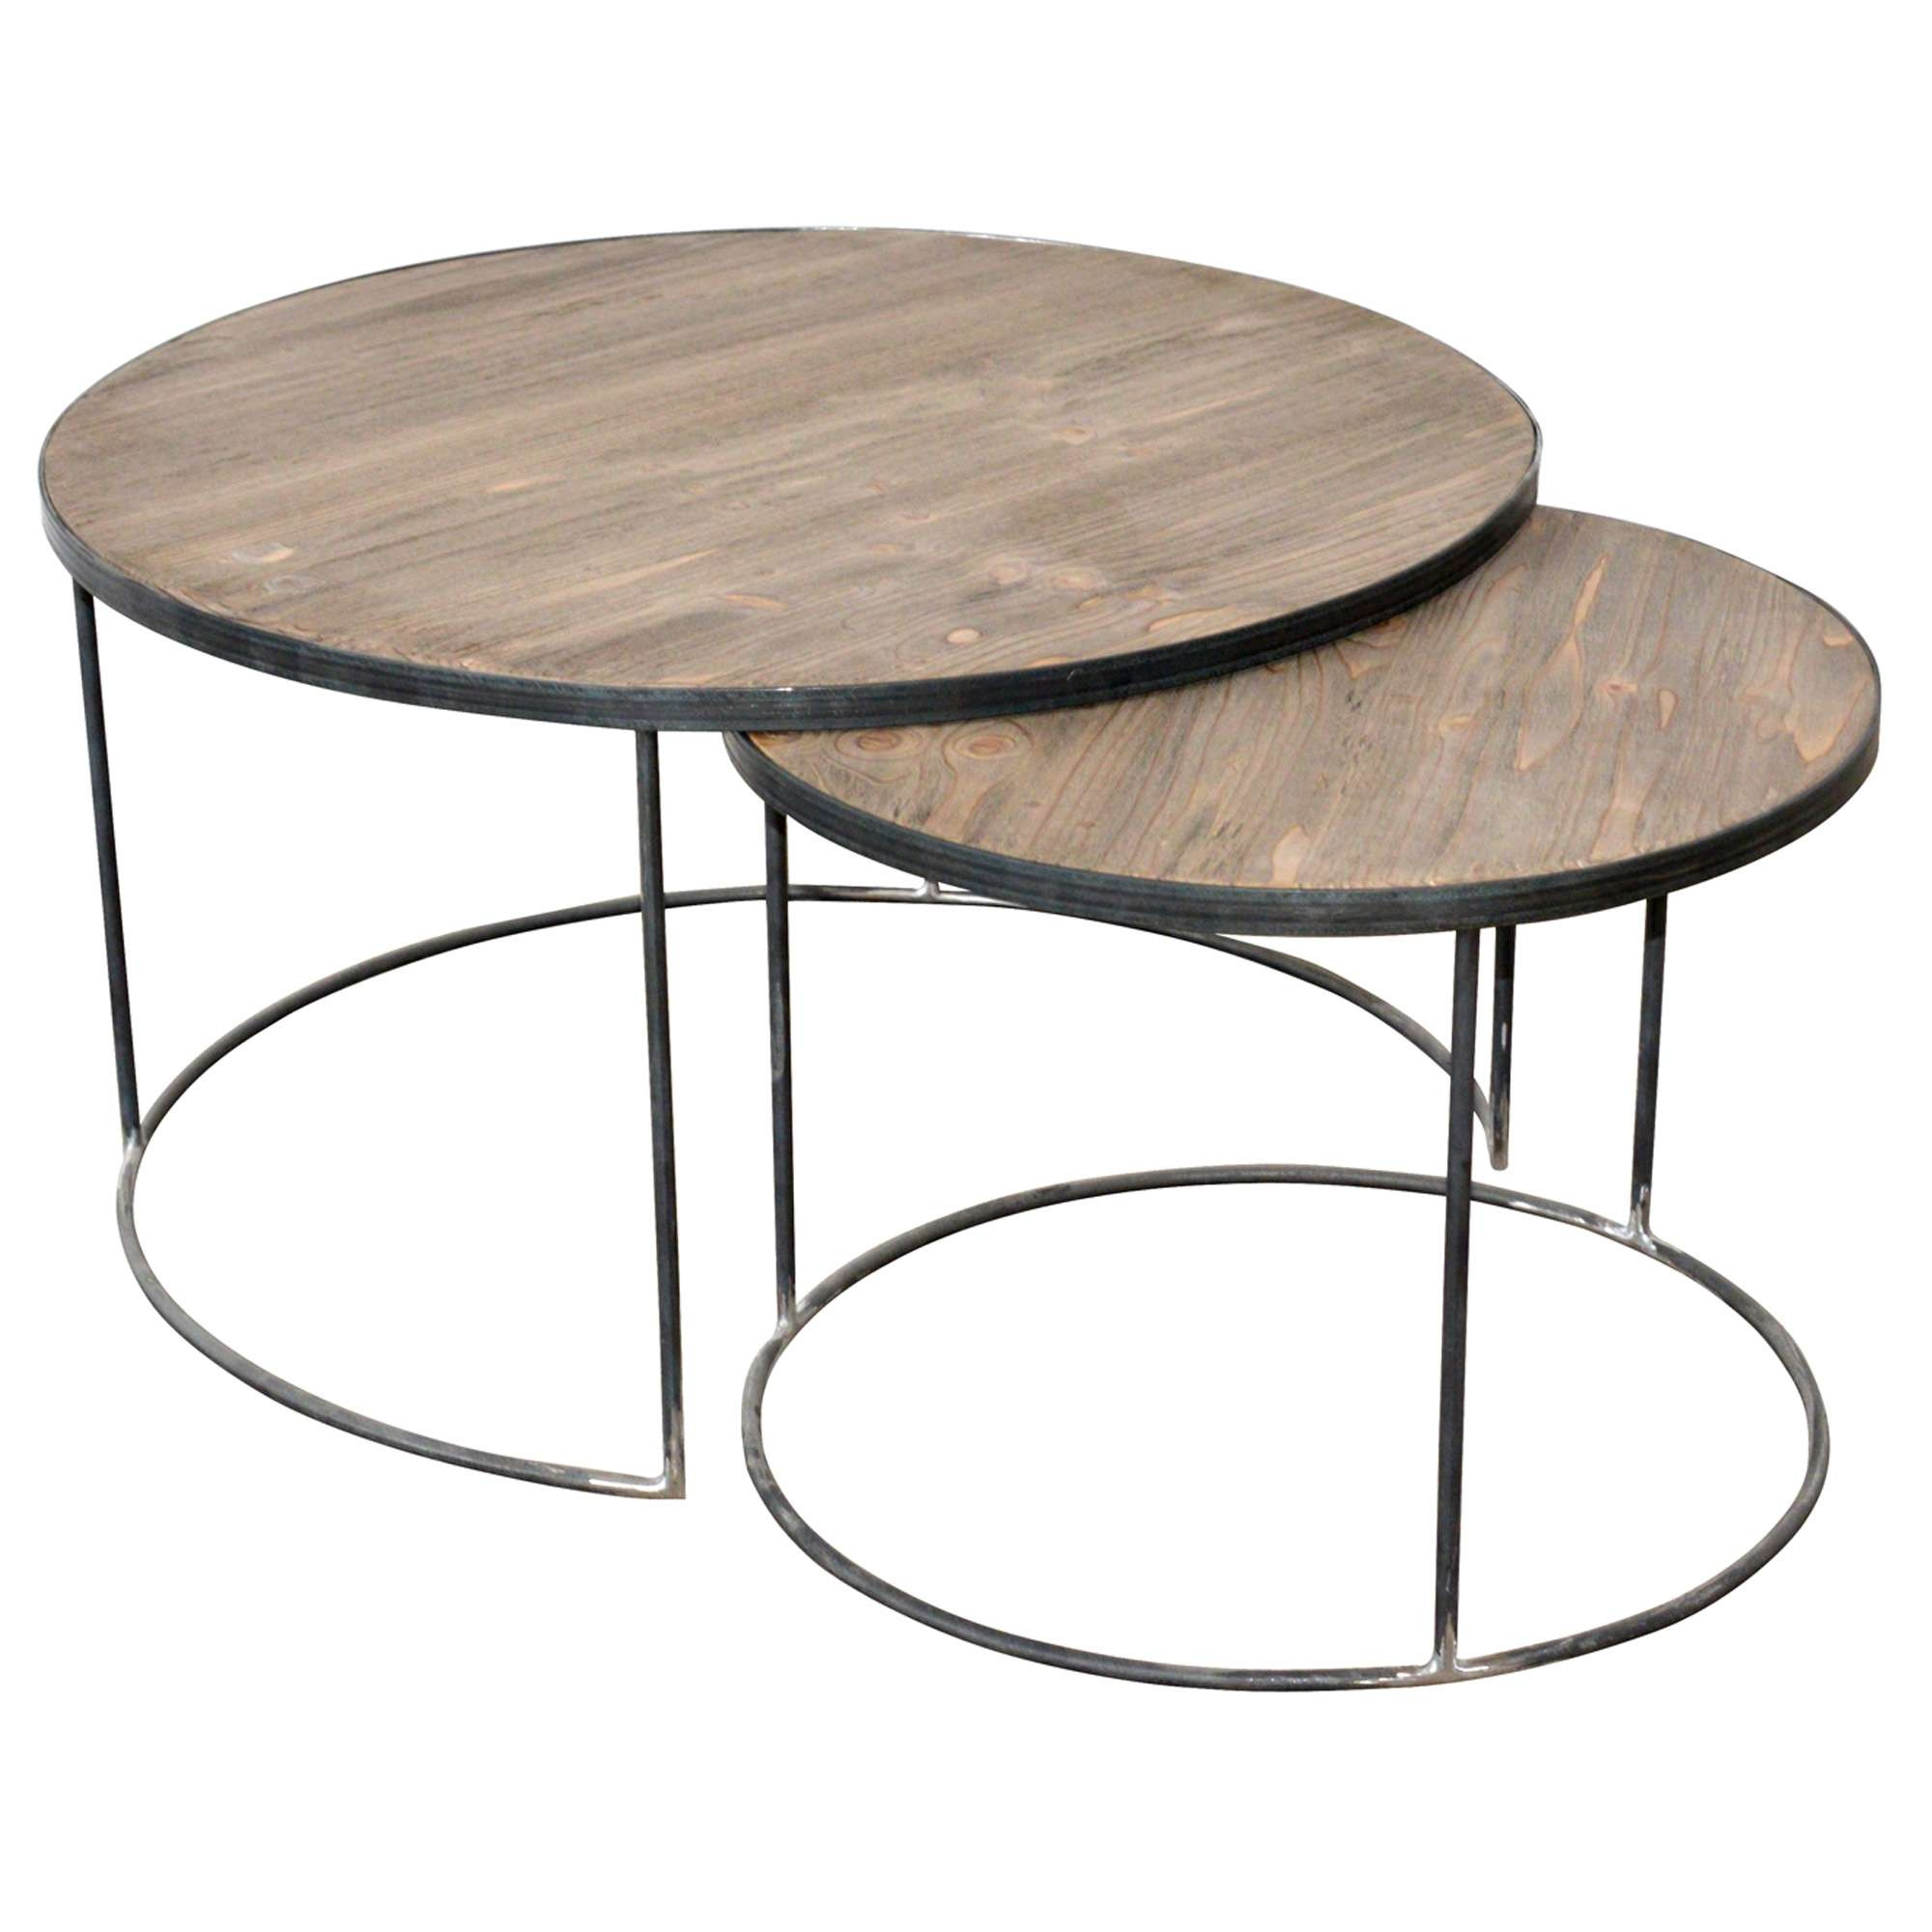 Well Known Circular Coffee Tables Intended For Good Round Coffee Table Set 55 In Home Decoration Ideas With Round (View 19 of 20)